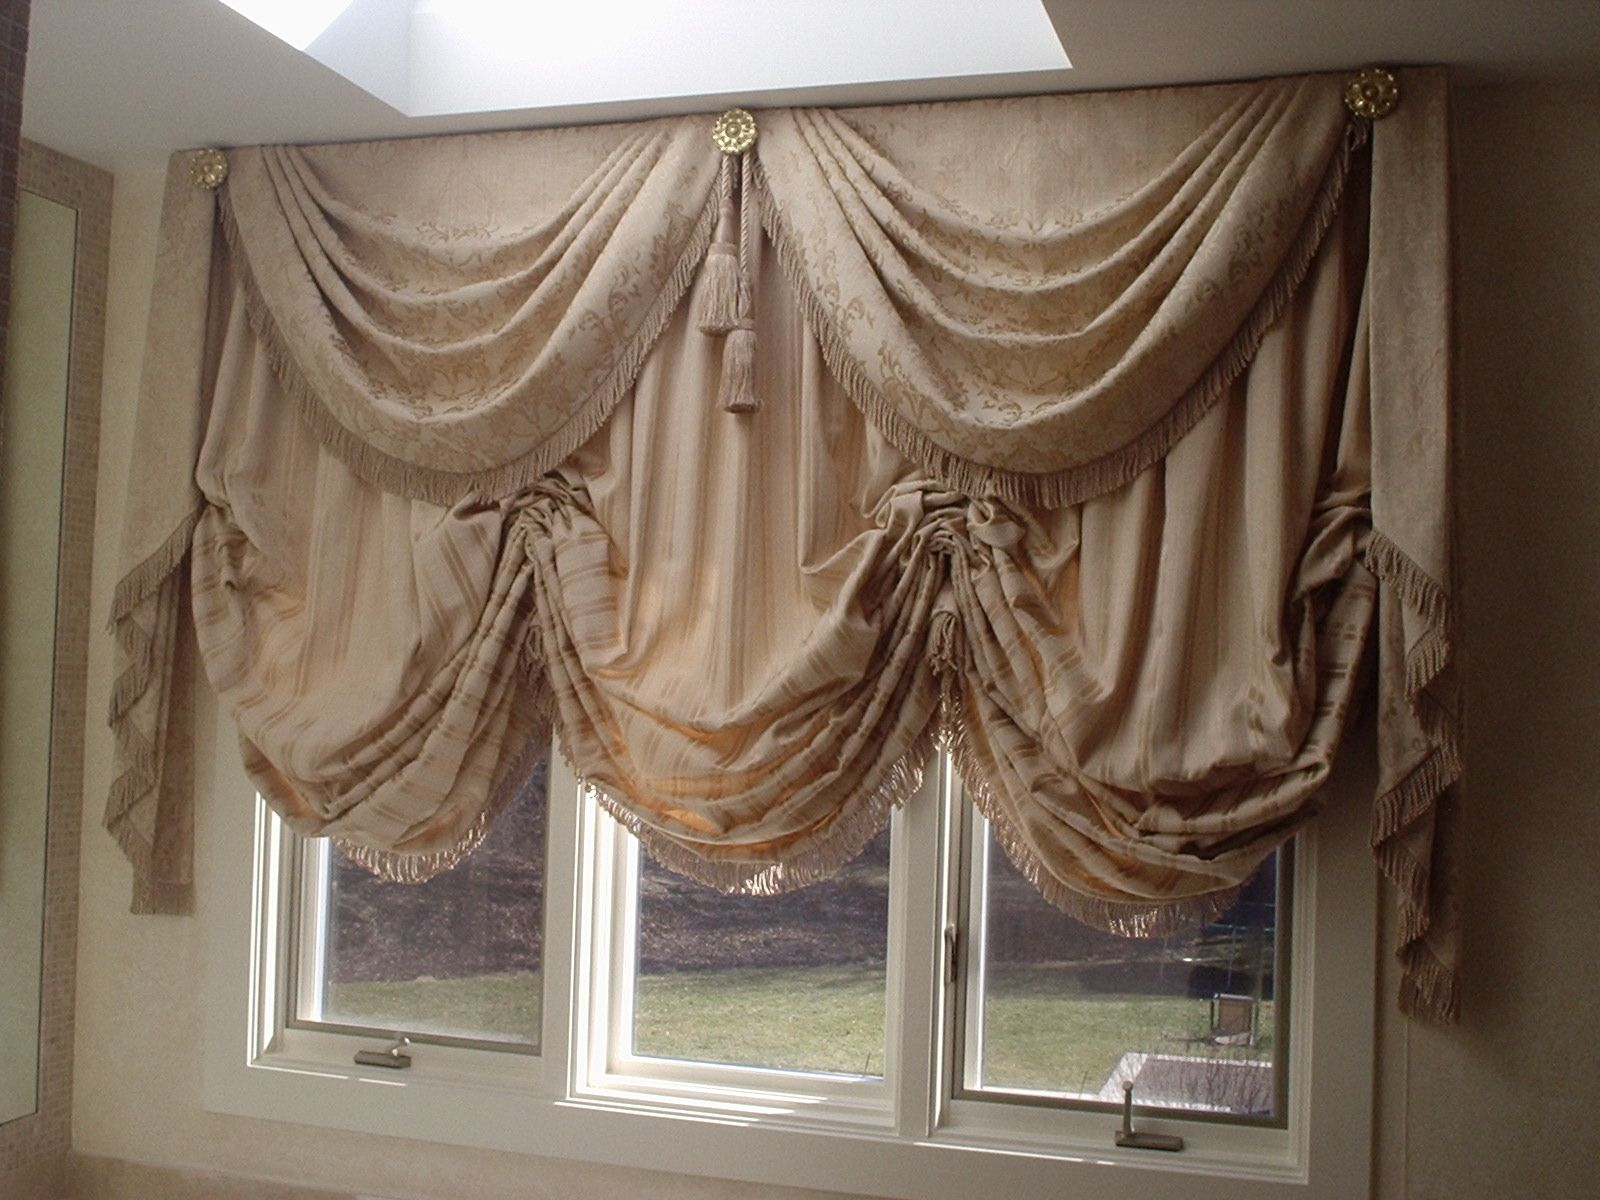 lace bemalas mesh shade bedroom for to our a touch sophisticated feminine of balloon gives room and any awesome com available lovely curtain curtains